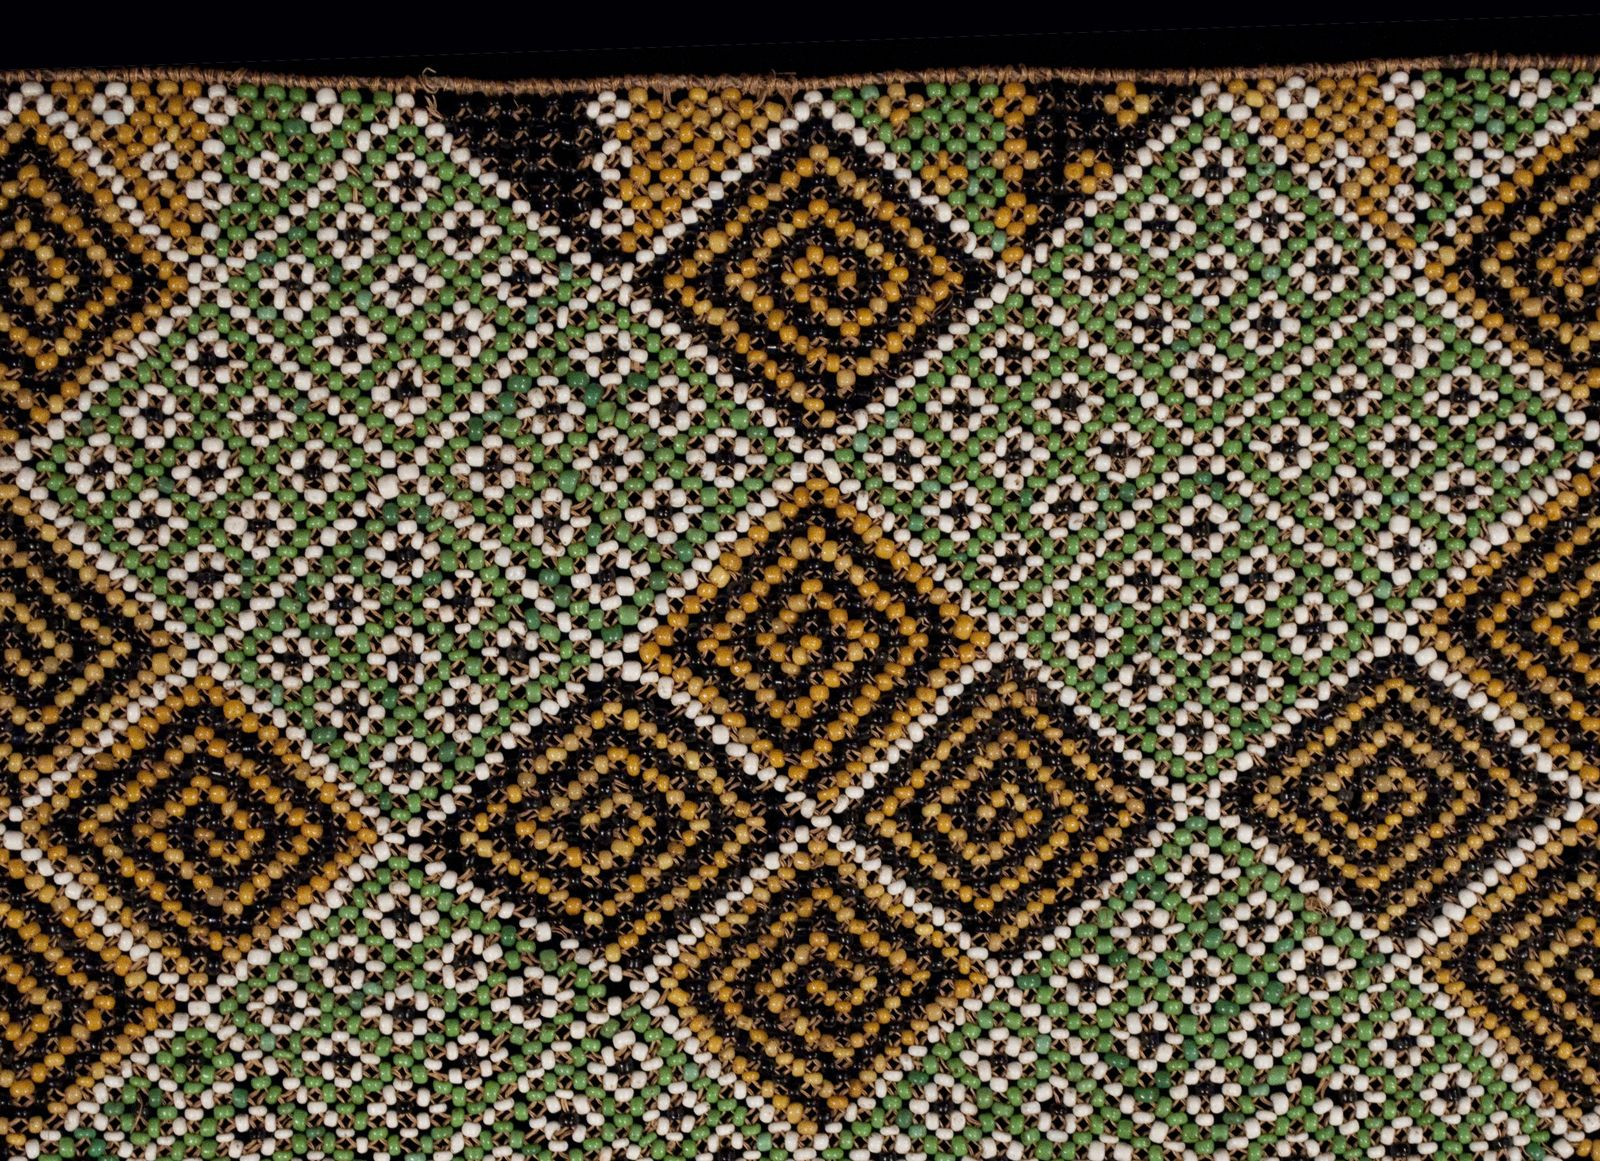 """Serue, woman's ceremonial apron  Geelvink Bay, West Papua New Guinea  Glass beads, fiber, trade cloth  Beaded area is 18"""" (45.5 cm) wide by 14.5"""" (37 cm) high  Early to mid-20th century"""